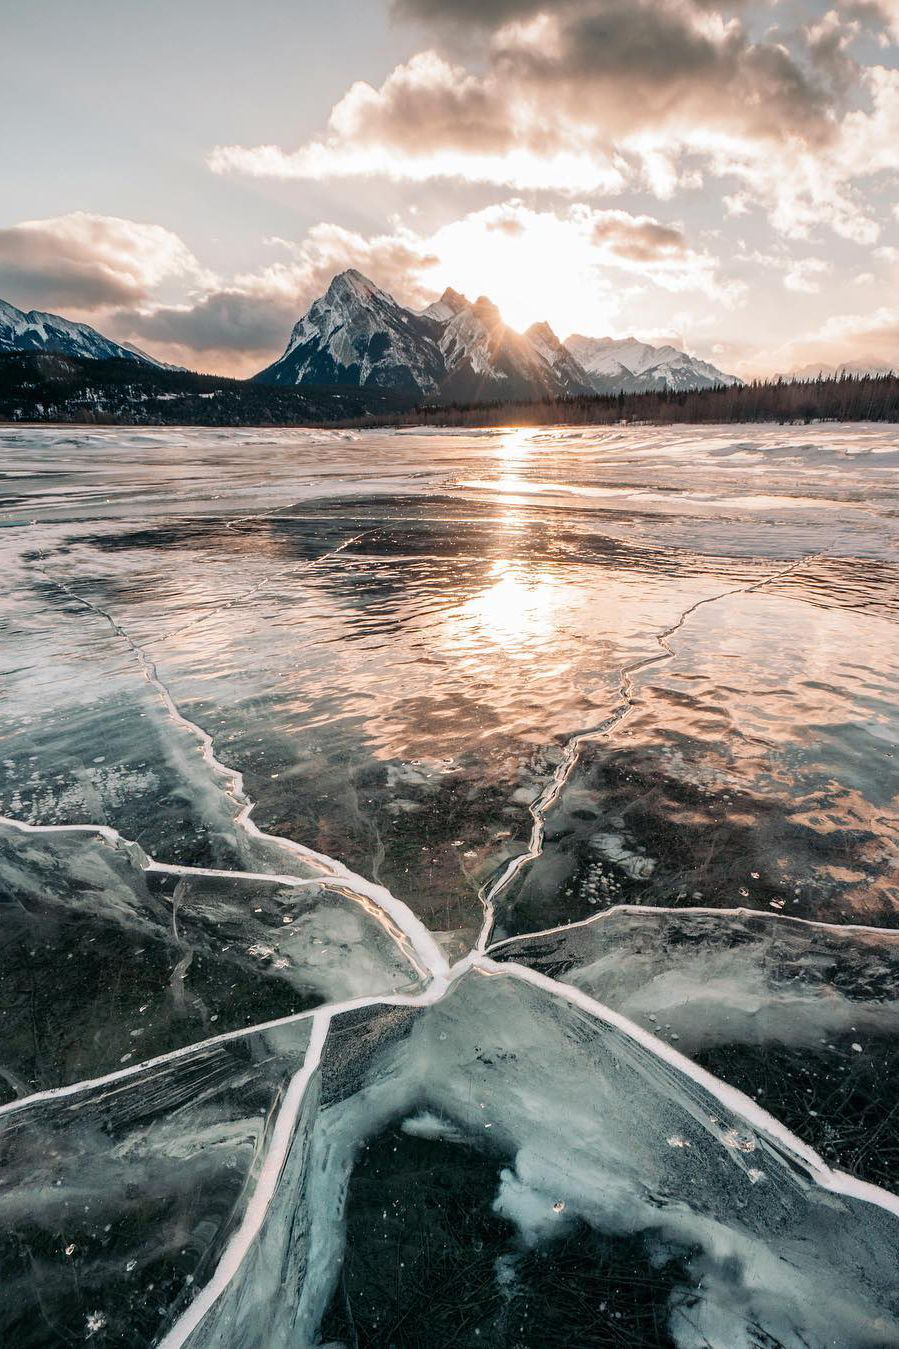 Into The Wild - banshy: Abraham Lake by: Stevin Tuchiwsky